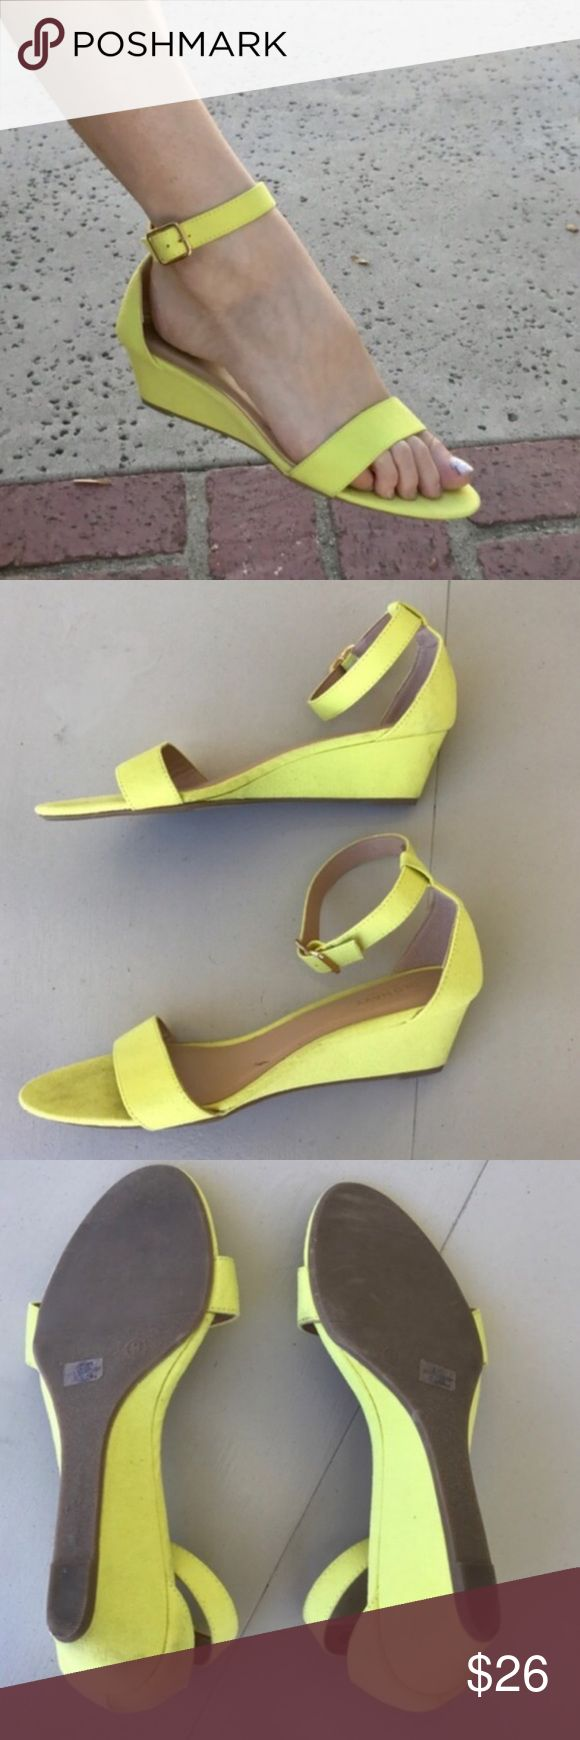 """Yellow WEDGE SANDAL STRAPPY Sz 9 faux suede low So pretty! BEST SANDALS! Fresh Lemon Yellow low WEDGE SANDAL Sz 9, faux suede. So comfortable so flattering on the feet and legs! Can DRESS up or down. Get the style without the high heel! 1.75"""" height. (F22) Yellow low WEDGE SANDAL STRAPPY Sz 9 faux suede Old Navy Shoes Sandals"""